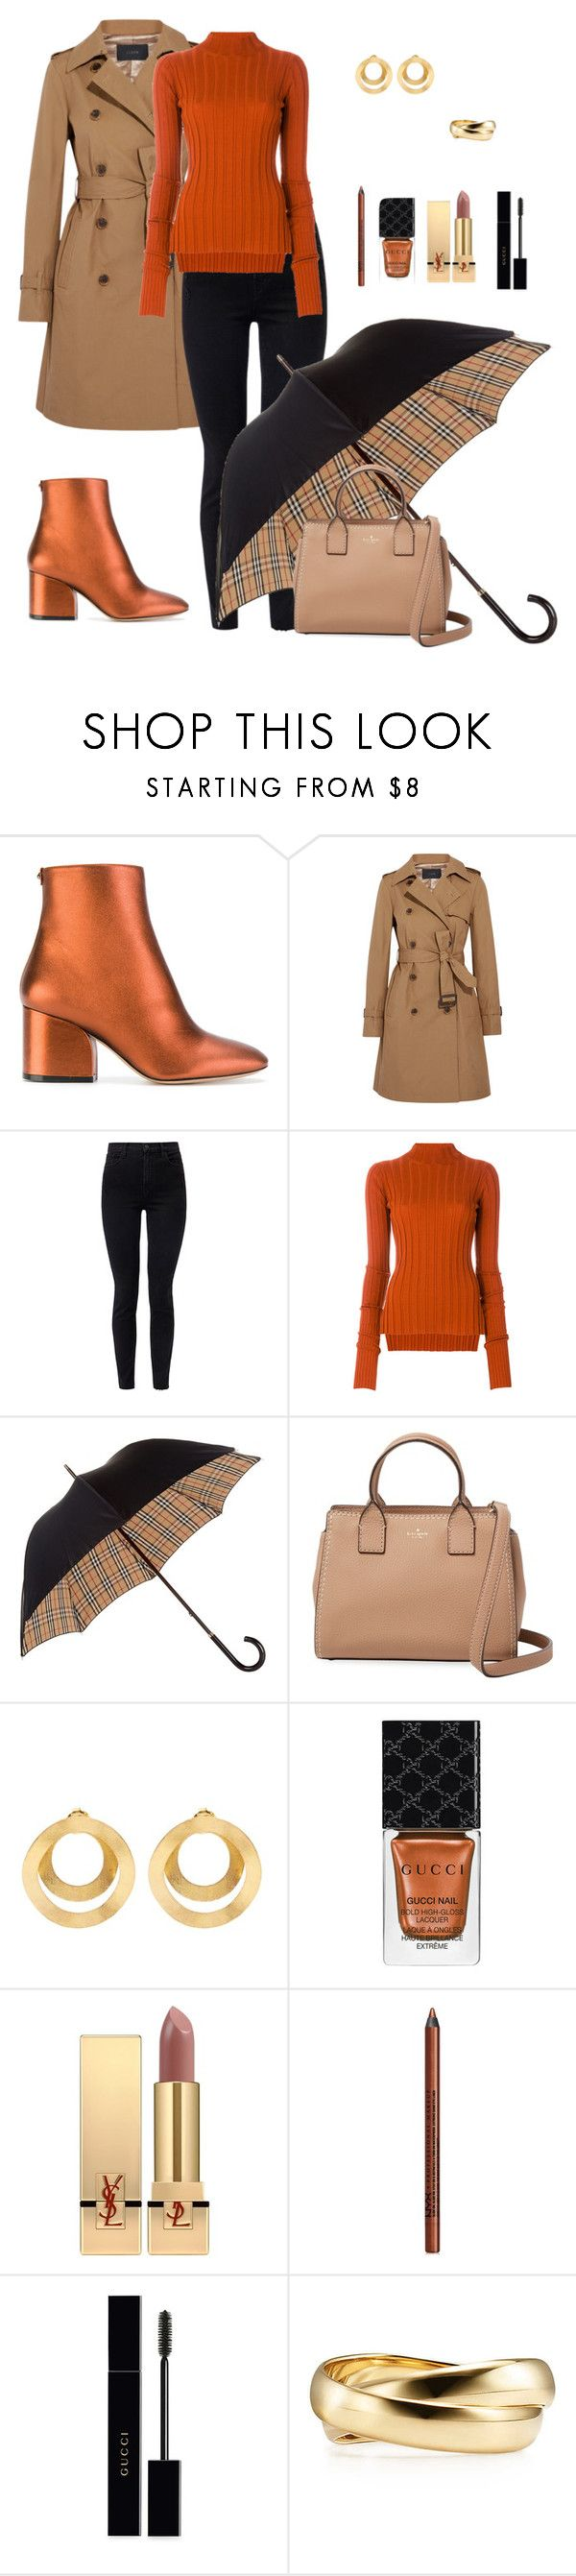 """""""Untitled #862"""" by ladyasdis ❤ liked on Polyvore featuring Salvatore Ferragamo, J.Crew, J Brand, Theory, Burberry, Kate Spade, Anissa Kermiche, Gucci, Yves Saint Laurent and NYX"""